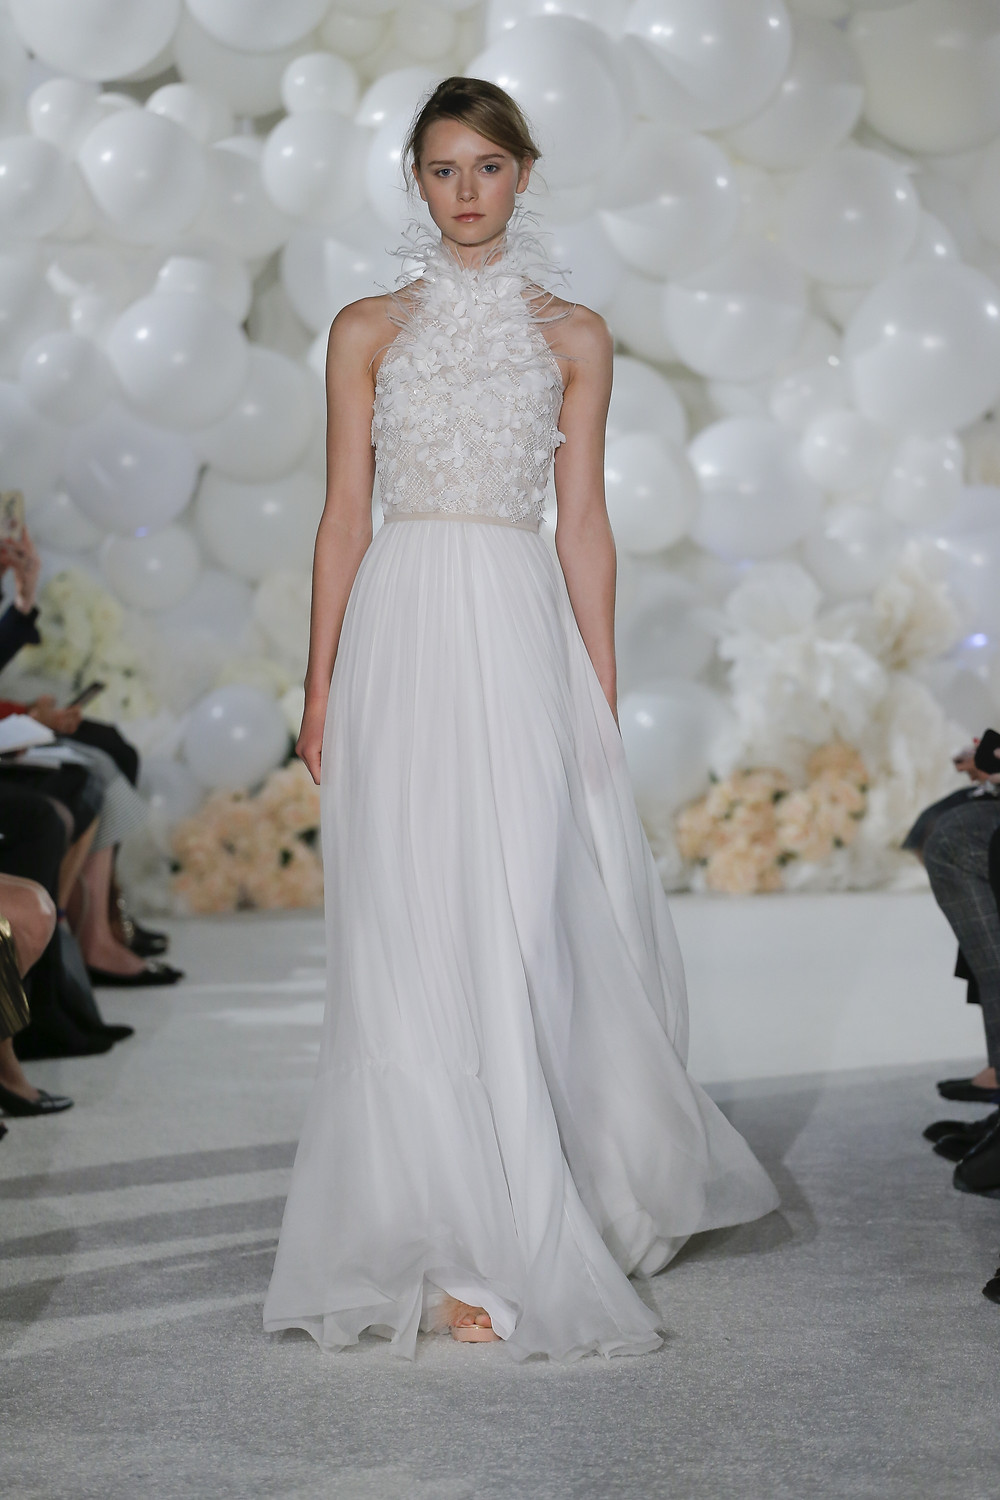 A Mira Zwillinger flowy chiffon and feathers A-line wedding dress